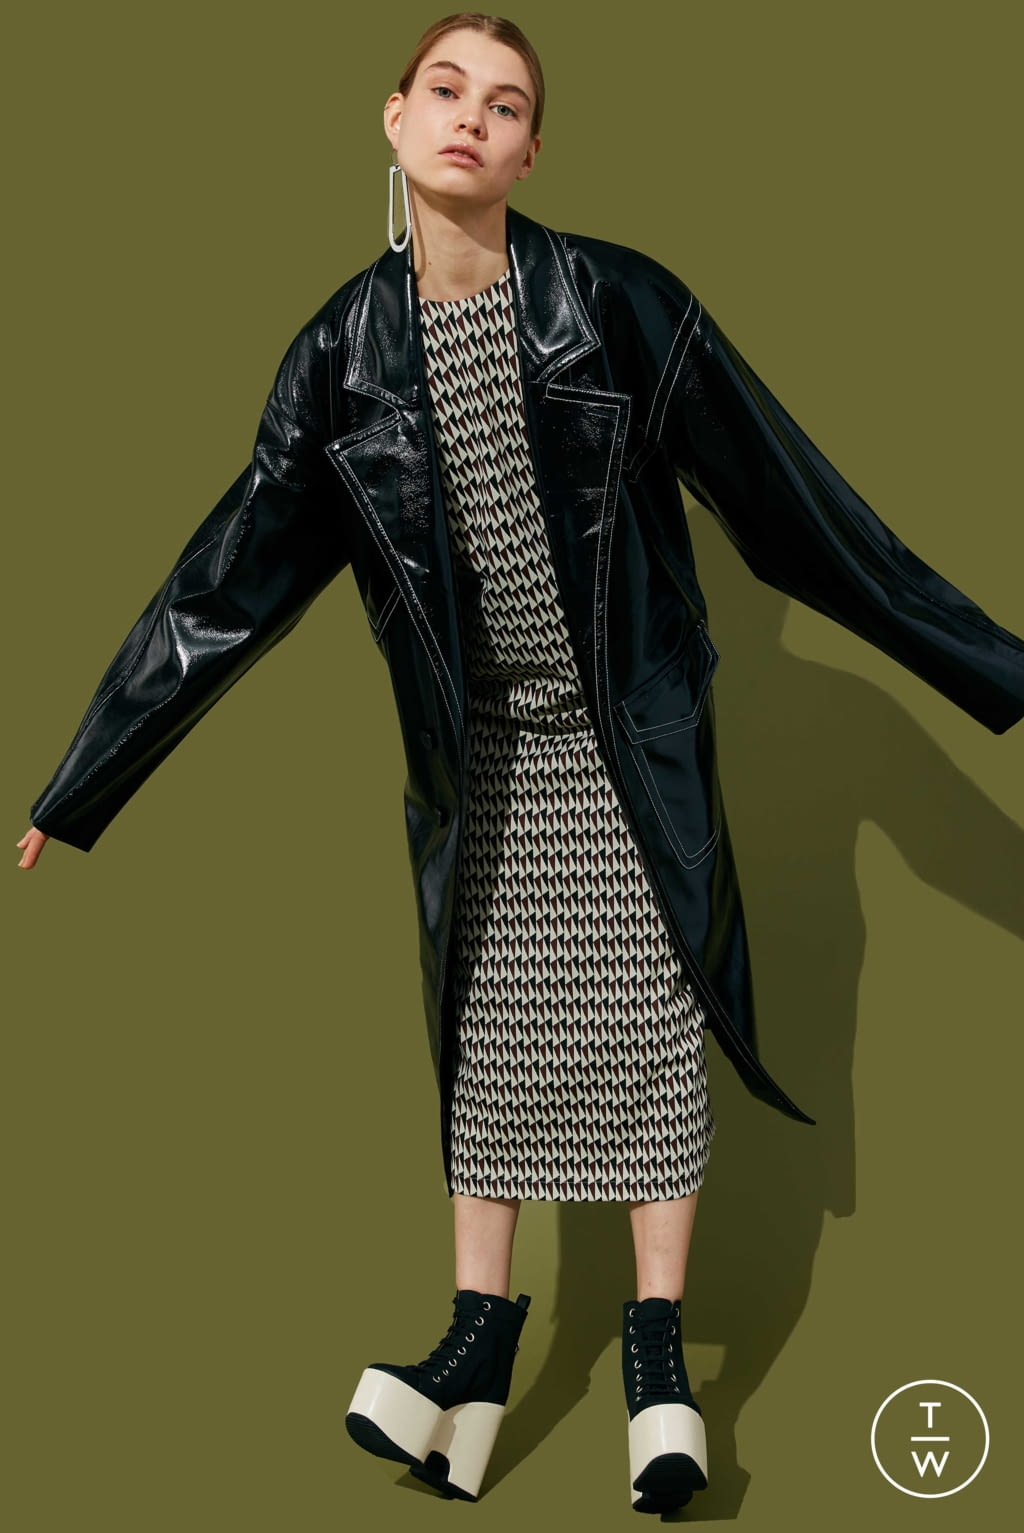 Fashion Week New York Pre-Fall 2020 look 2 from the Tibi collection 女装